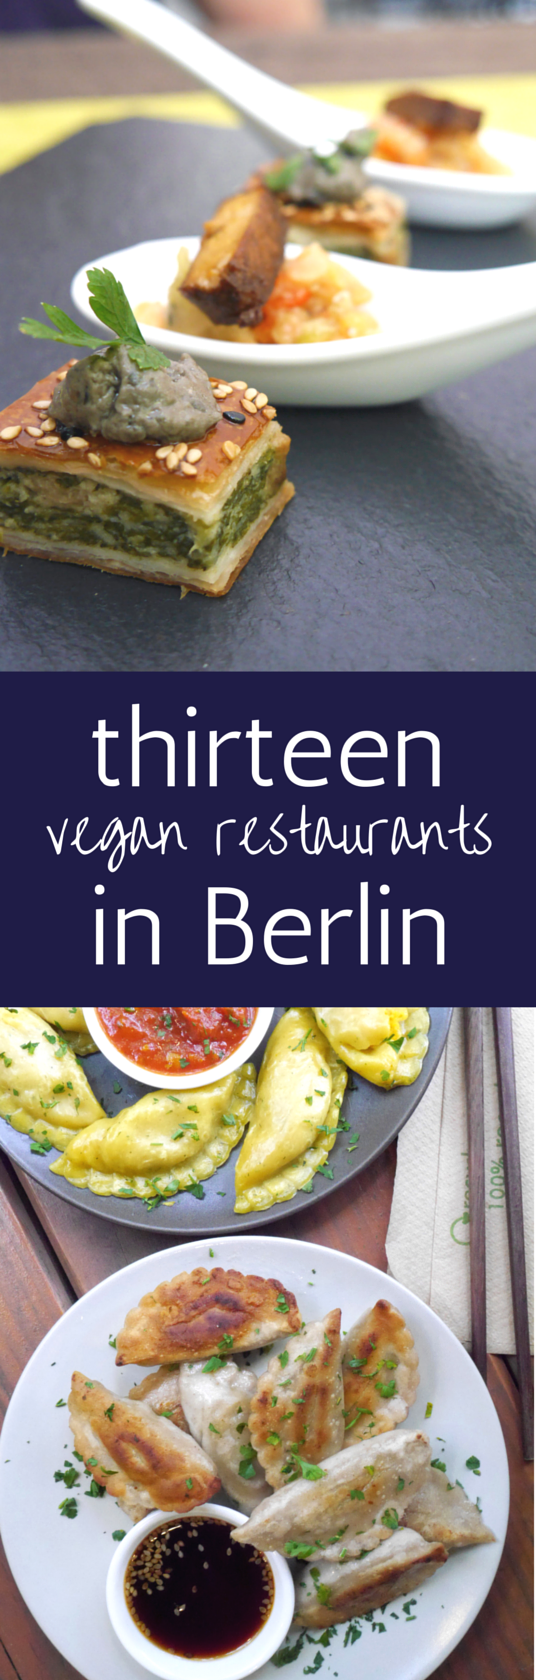 13 fantastisch vegan restaurants in berlin not to miss berlin pinterest. Black Bedroom Furniture Sets. Home Design Ideas